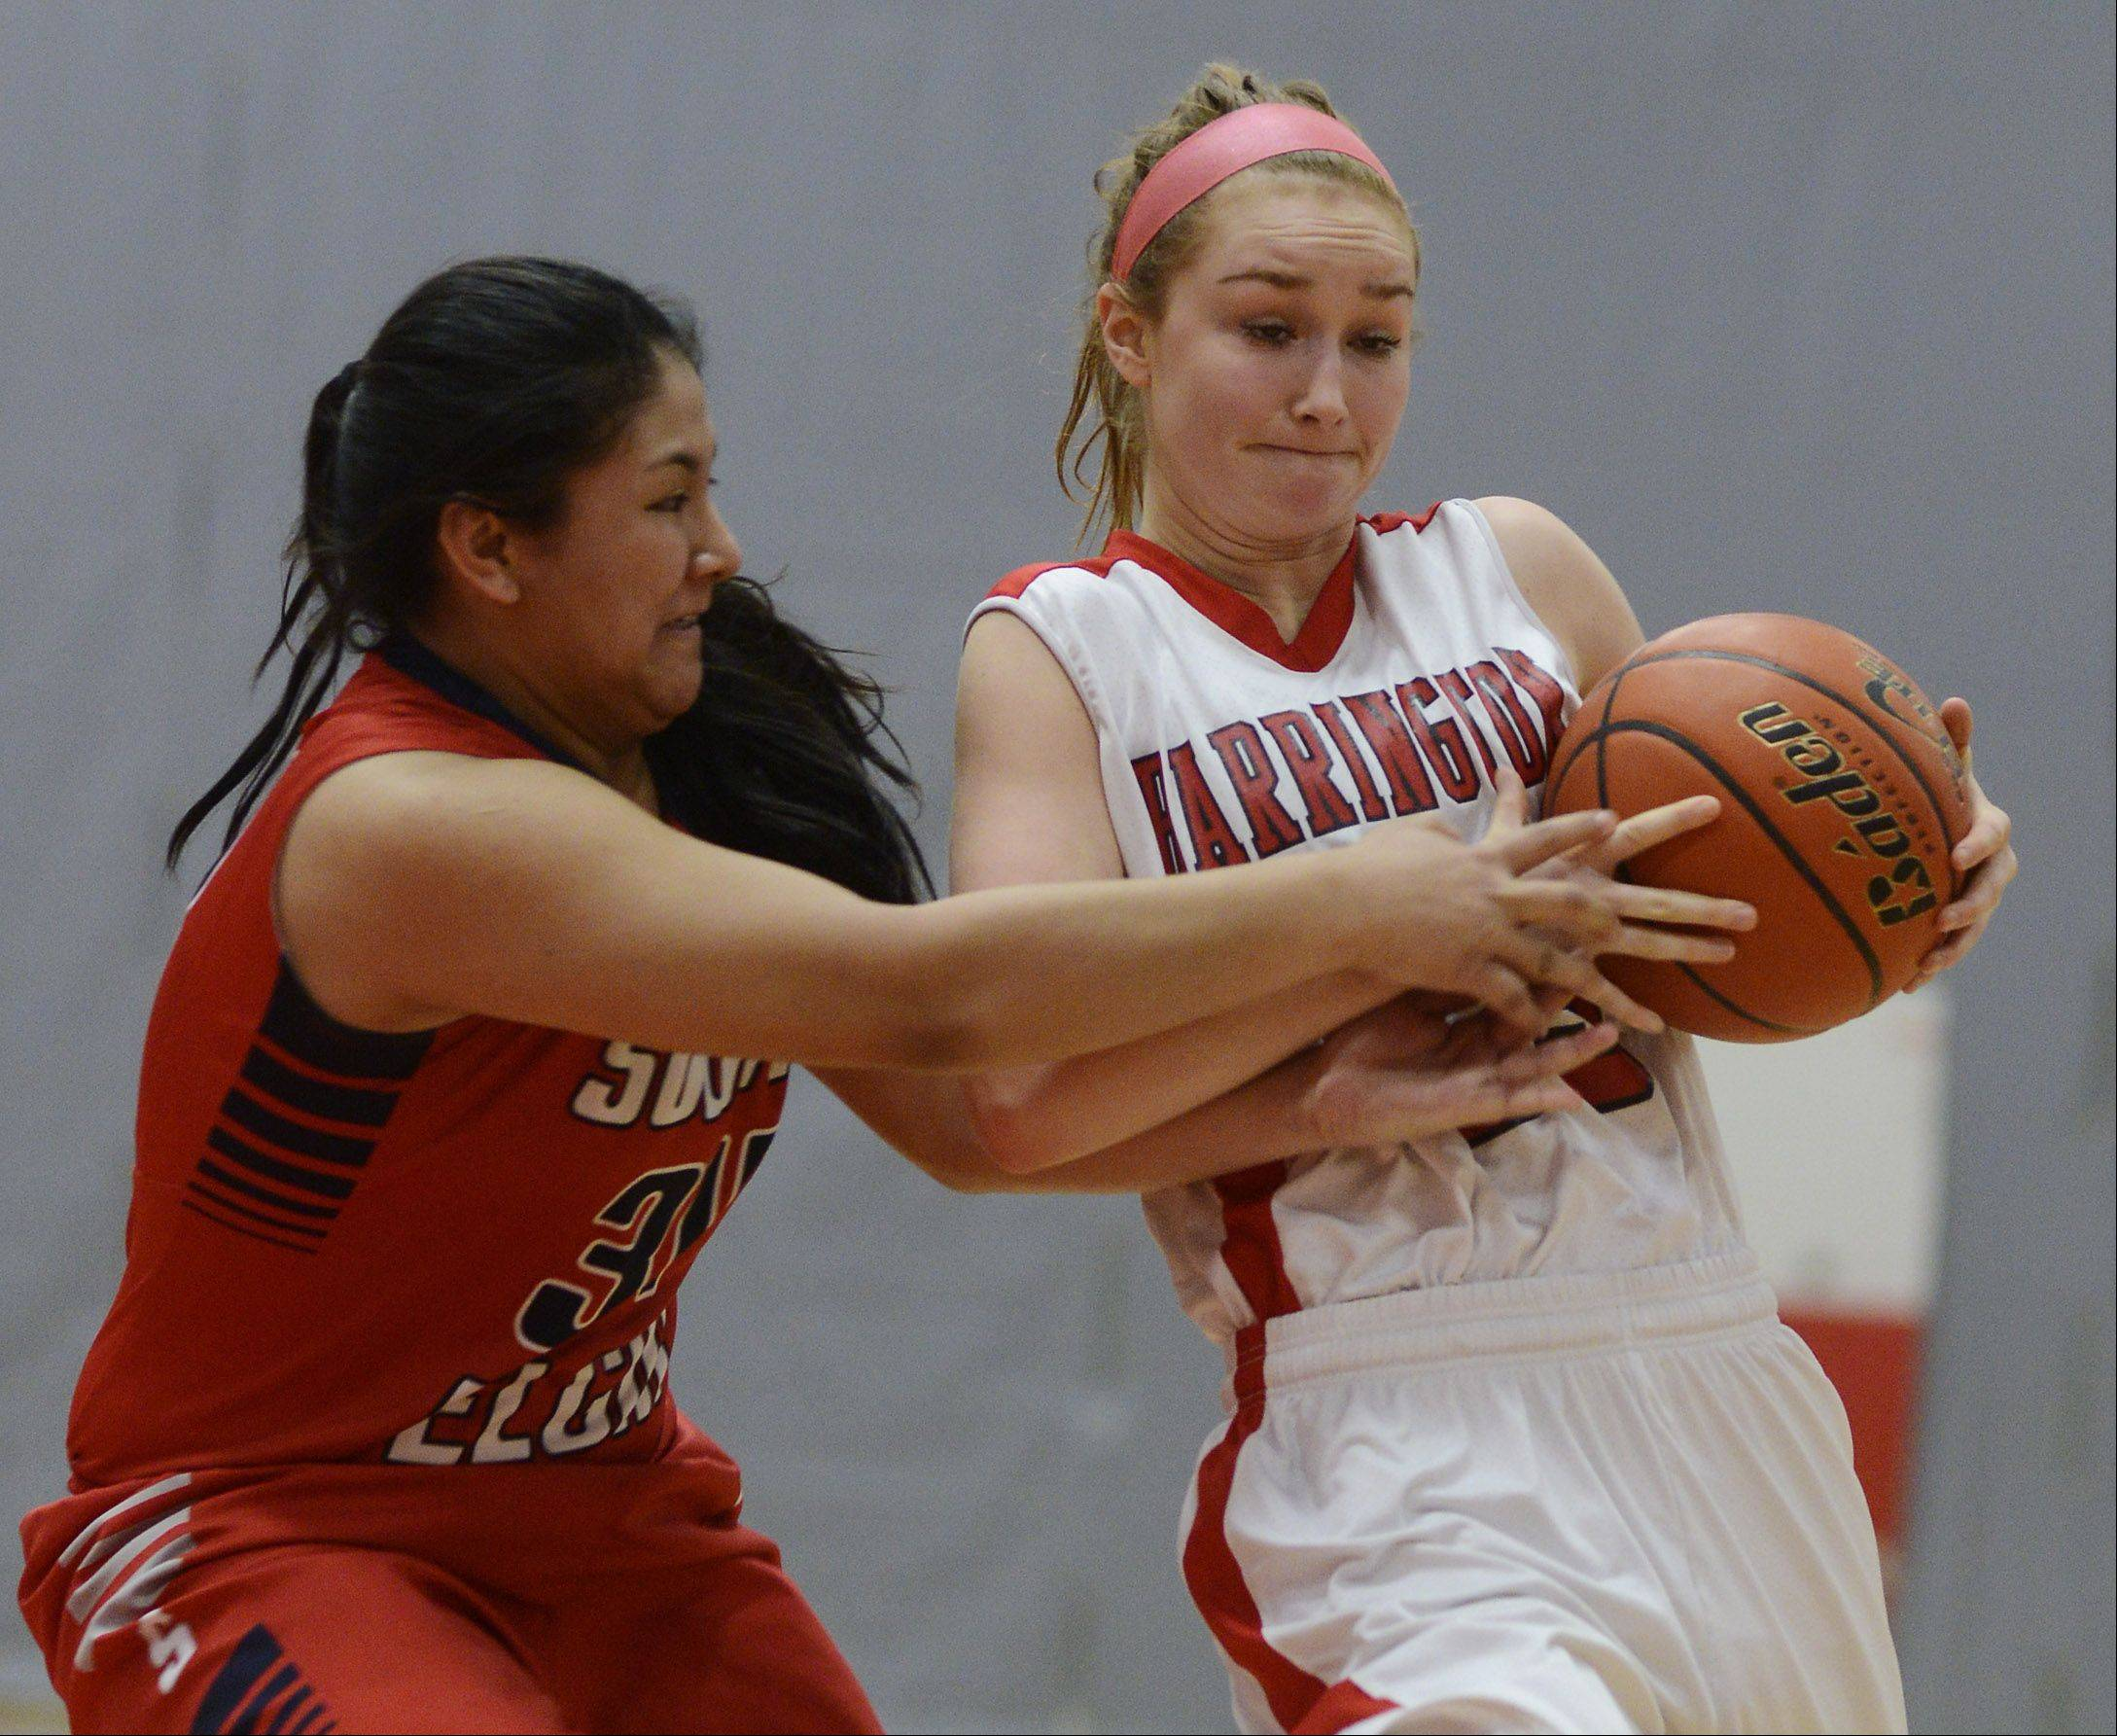 South Elgin's Nadia Yang, left, tries to strip the ball from Barrington's Brooke Gunderson during Wednesday's game at Barrington.